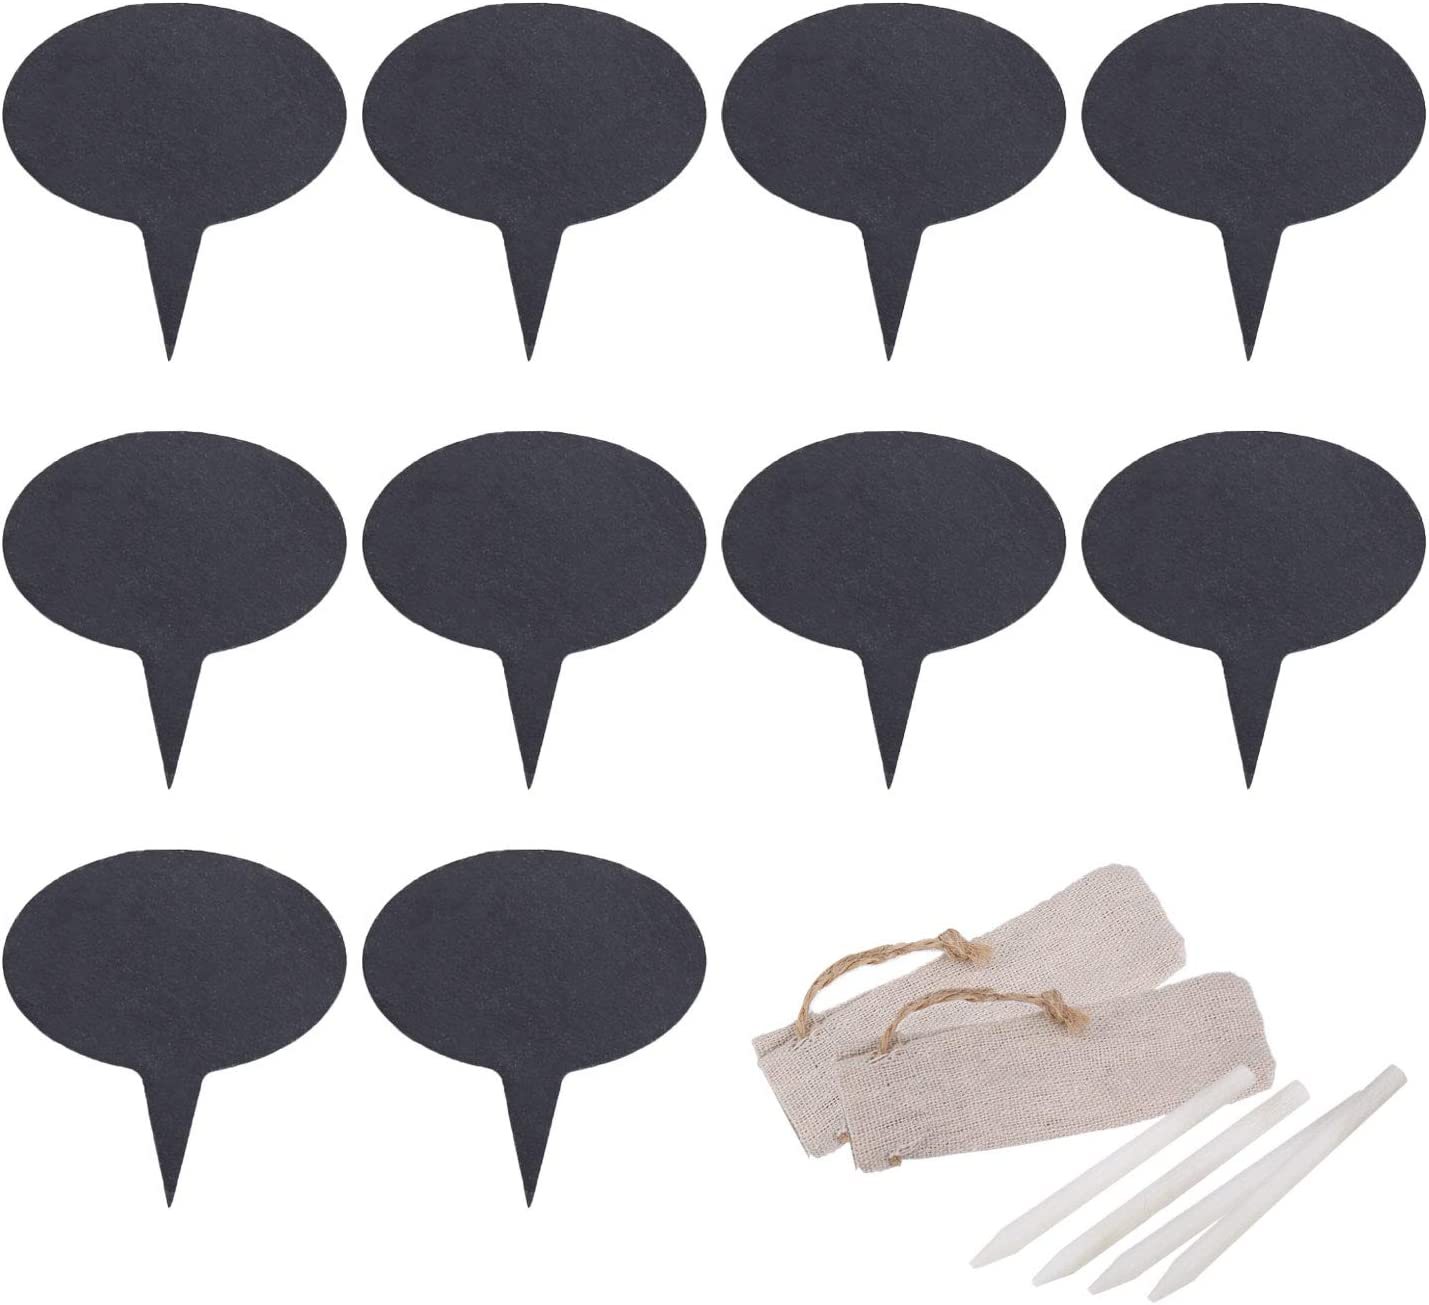 Freehawk Cheese Markers Set with 10 Natural Slate Cheese Labels & 4 Soapstone Chalks, Cheese Name Tags Set for Parties and Dinners